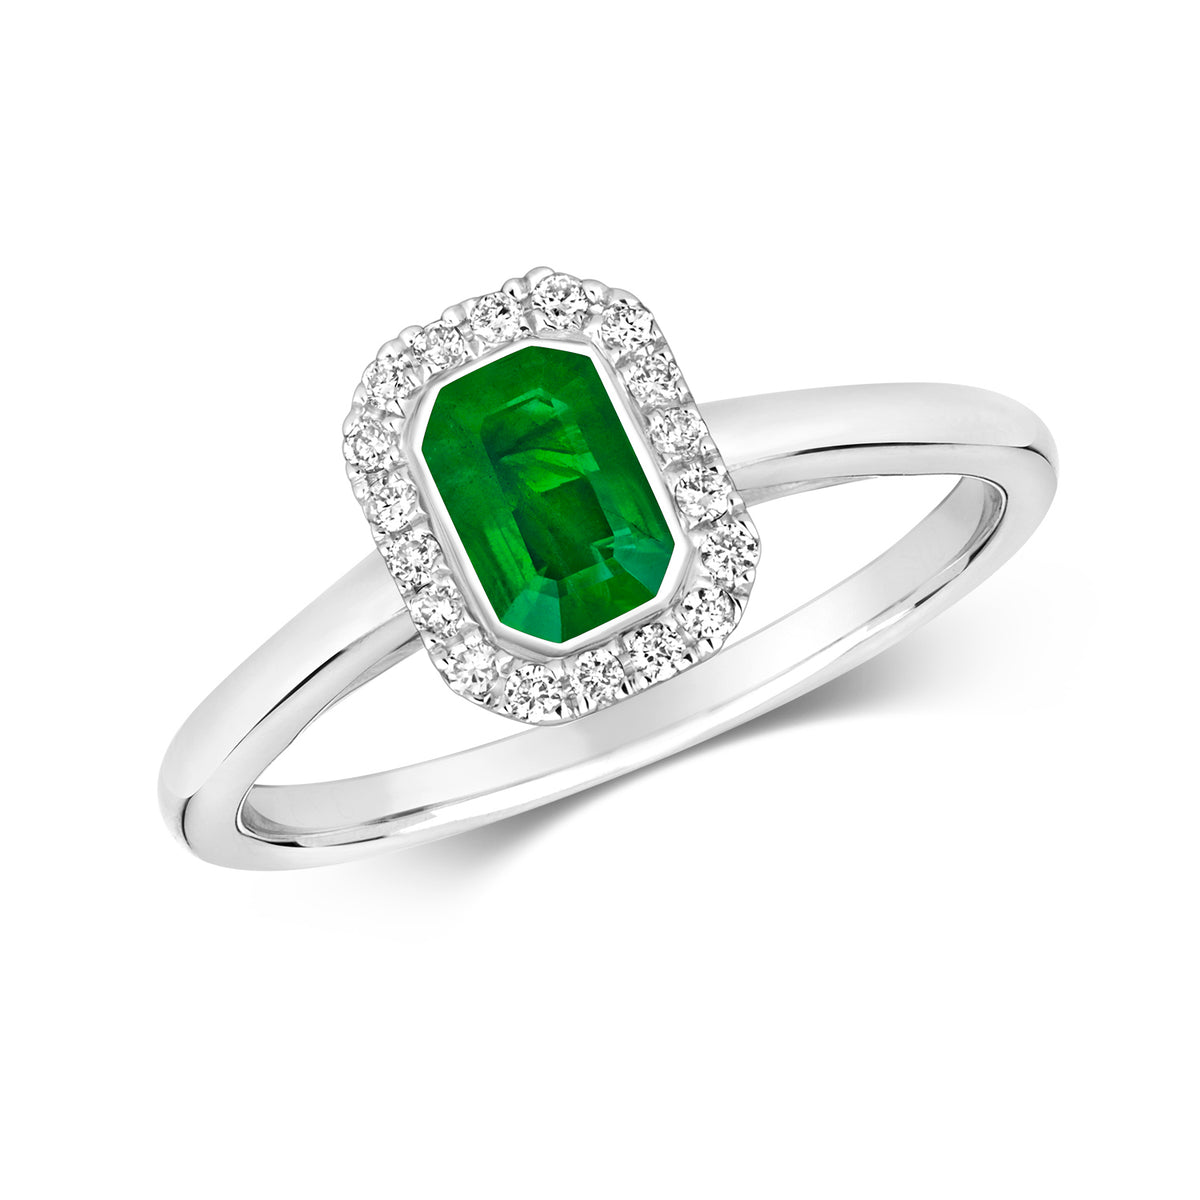 9ct White Gold Emerald and Diamond Ring